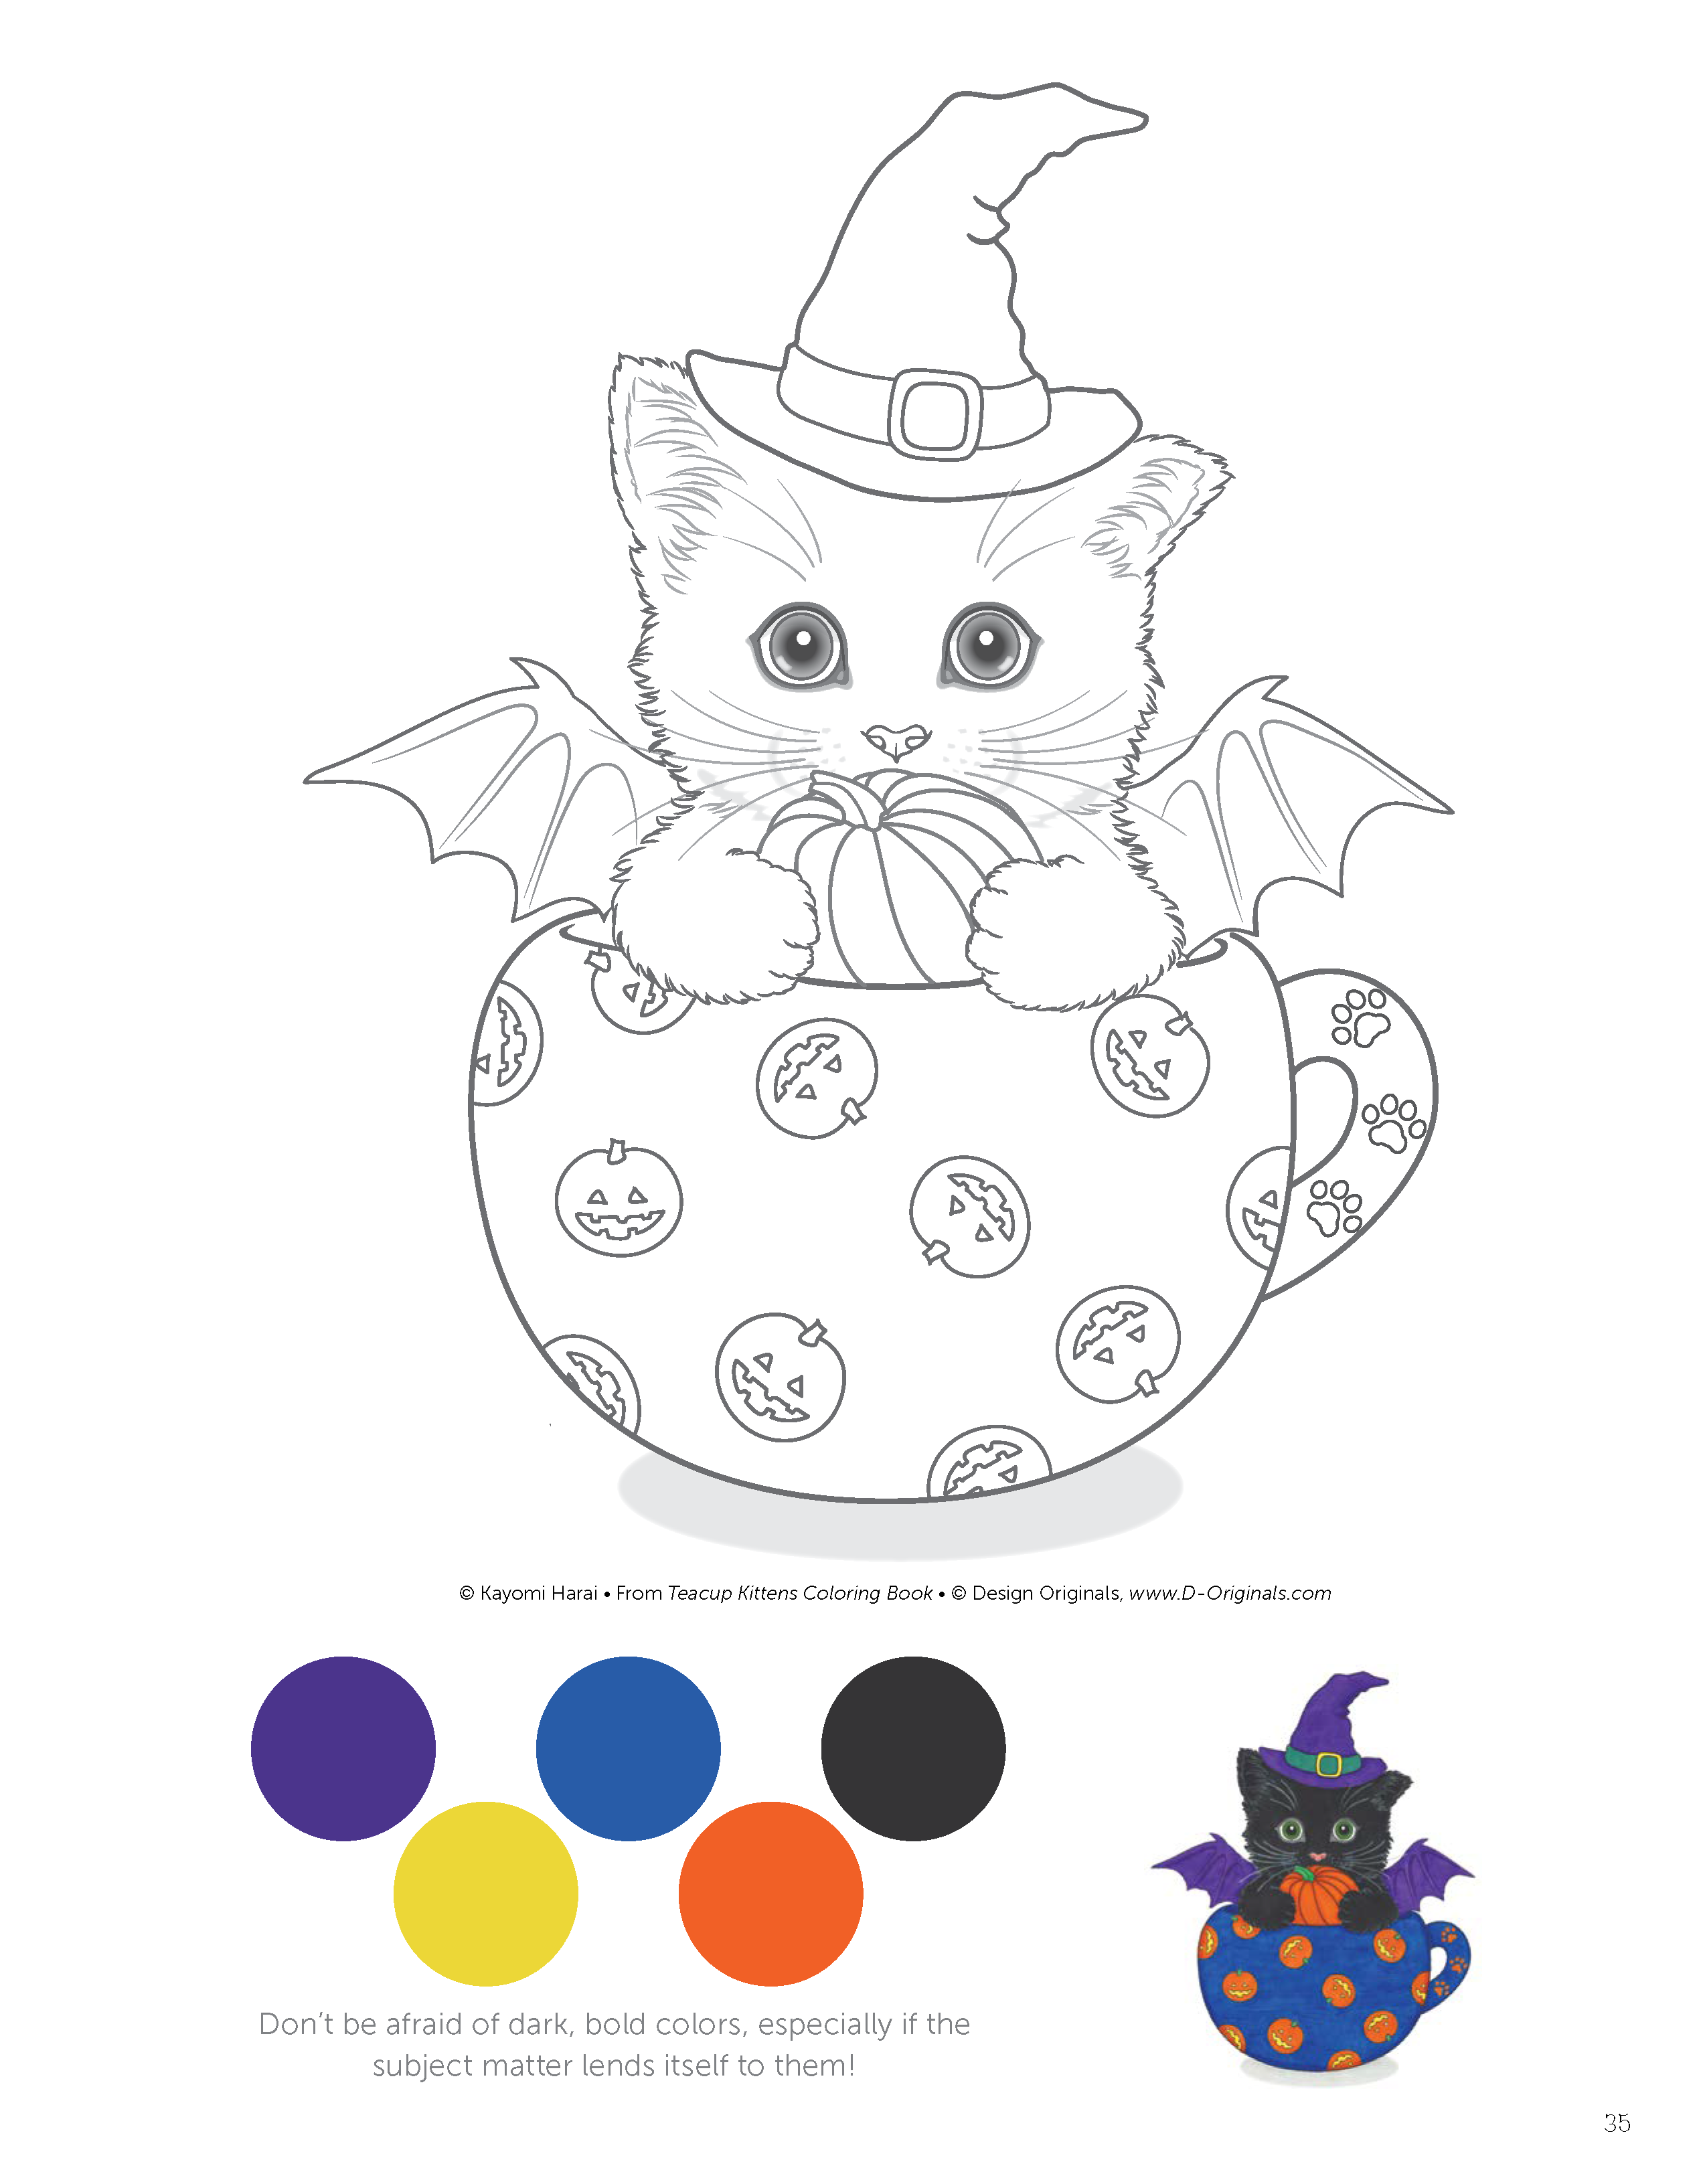 Katzen Ausmalbilder Vorlagen : Teacup Kittens Coloring Book Design Originals Kayomi Harai